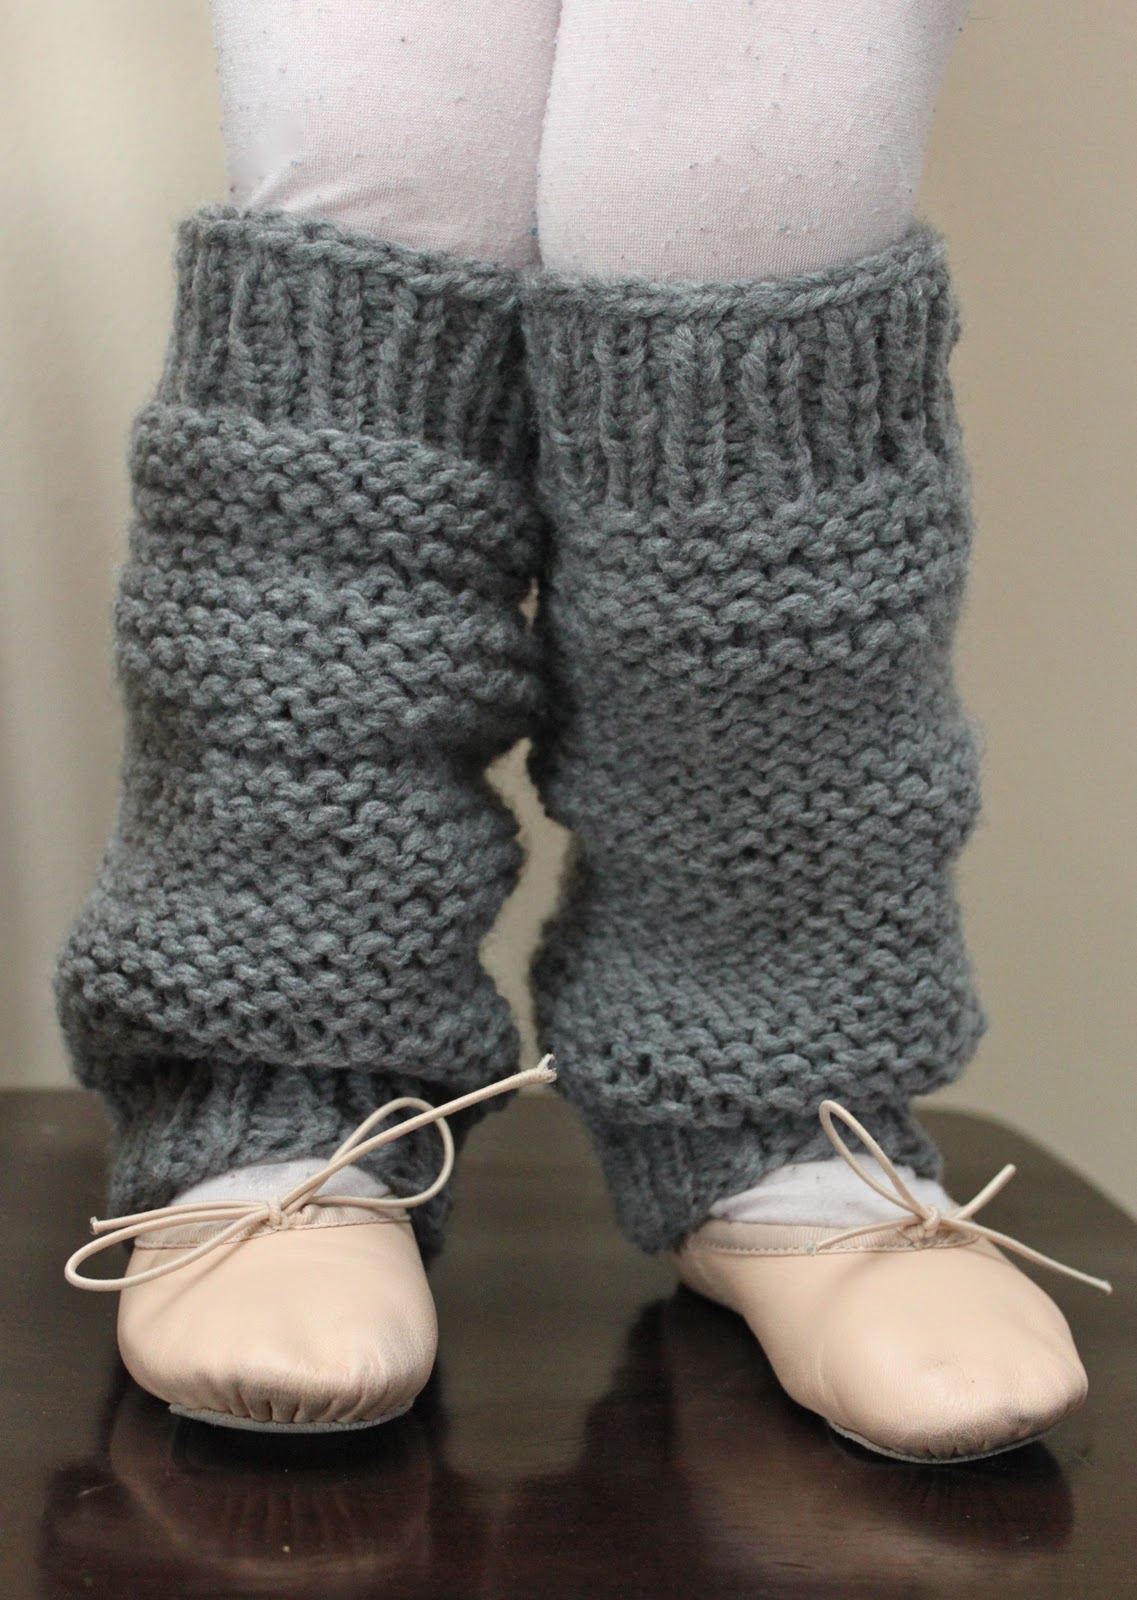 Knit Leggings Pattern : Little Girls Knit Legwarmers {A Pattern} - Smashed Peas ...